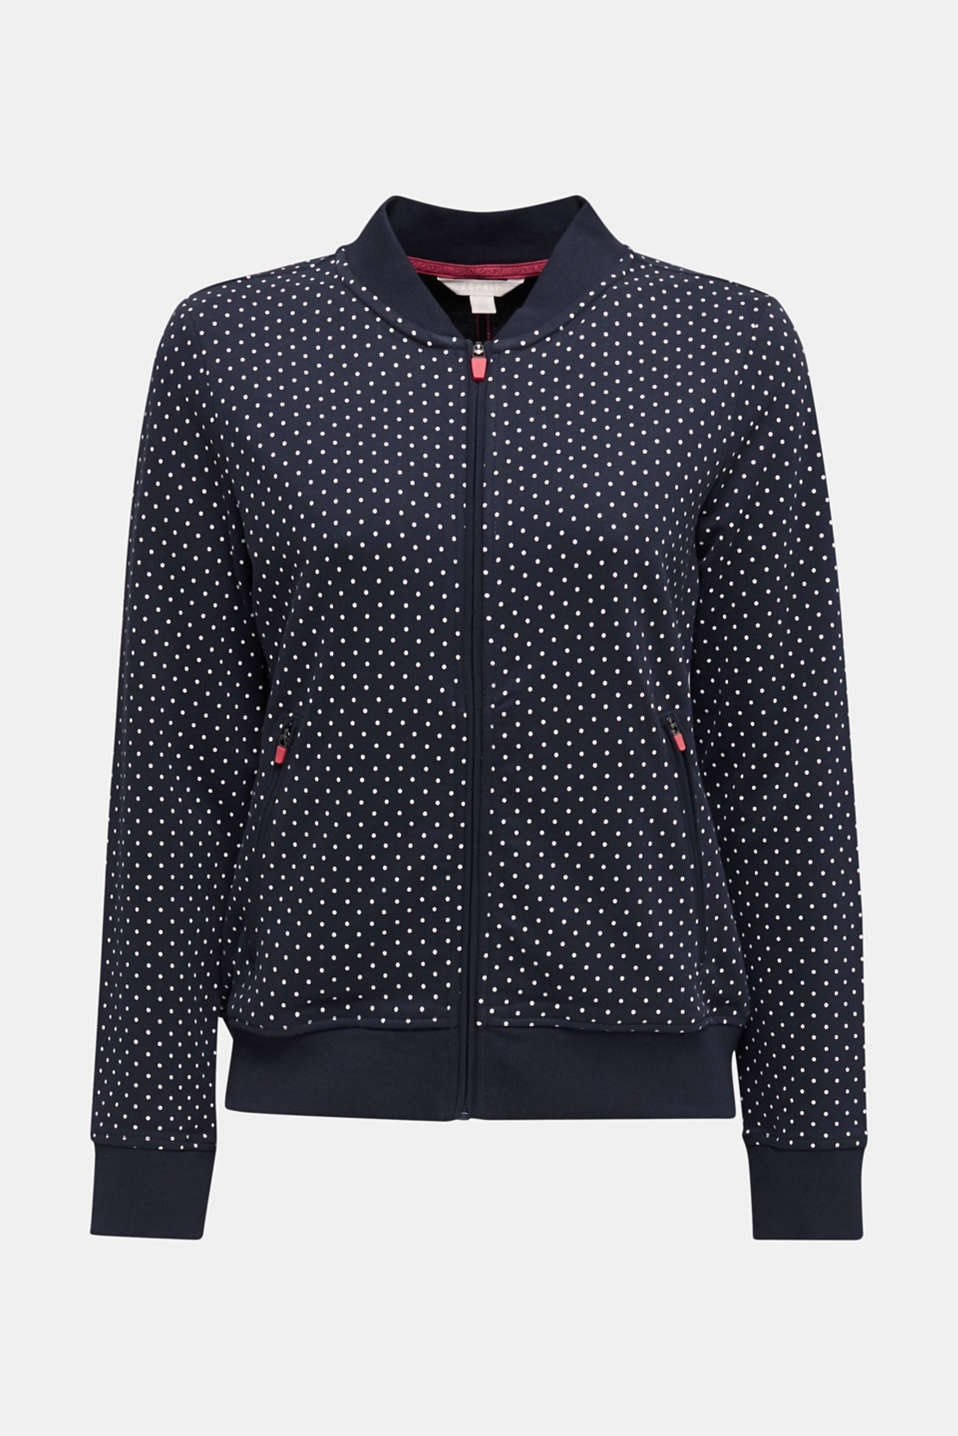 Sweatshirt cardigan with a print, NAVY 3, detail image number 7